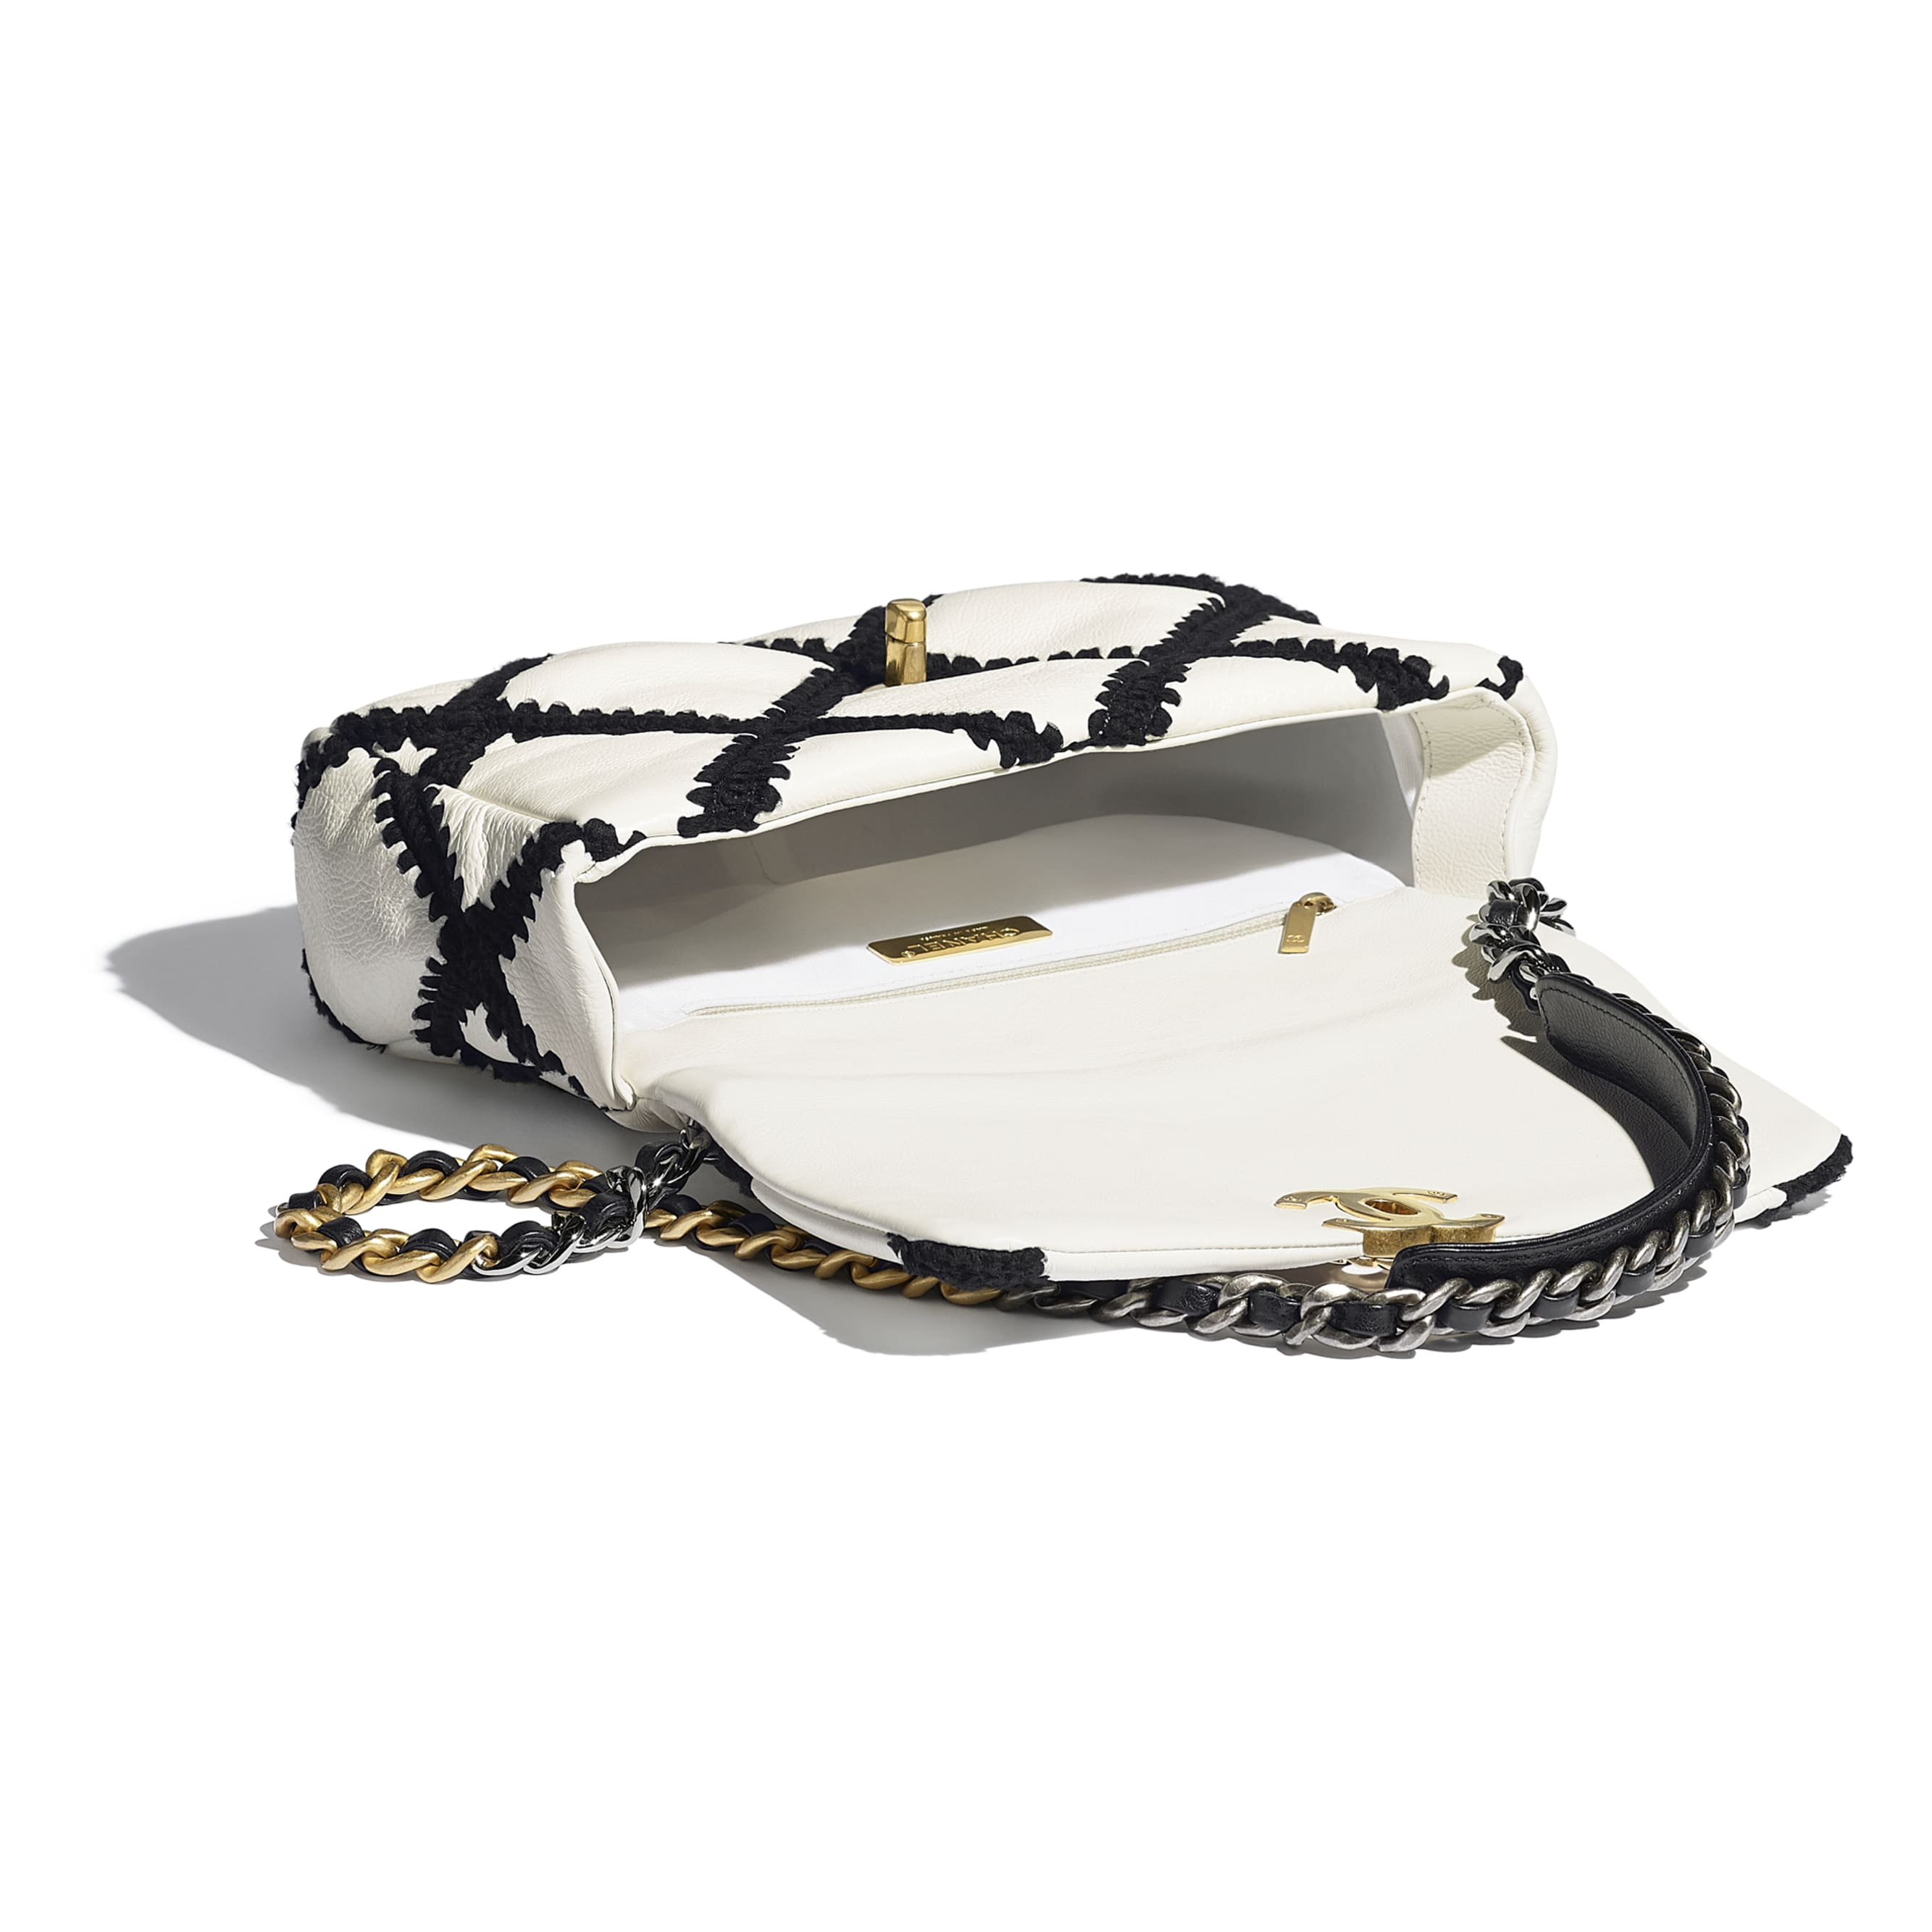 CHANEL 19 Handbag - White & Black - Calfskin, Crochet, Gold-Tone, Silver-Tone & Ruthenium-Finish Metal - CHANEL - Other view - see standard sized version